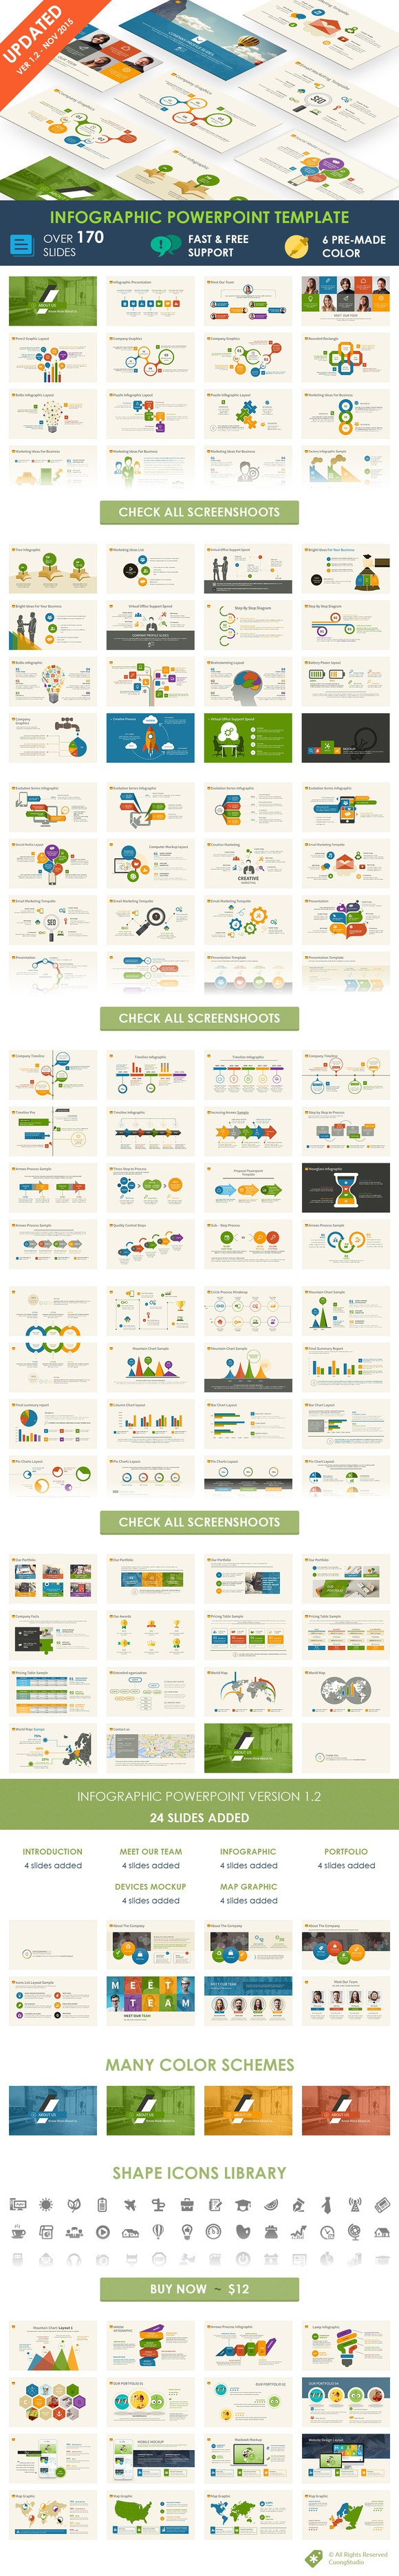 Infographic Powerpoint Template Business Infographic